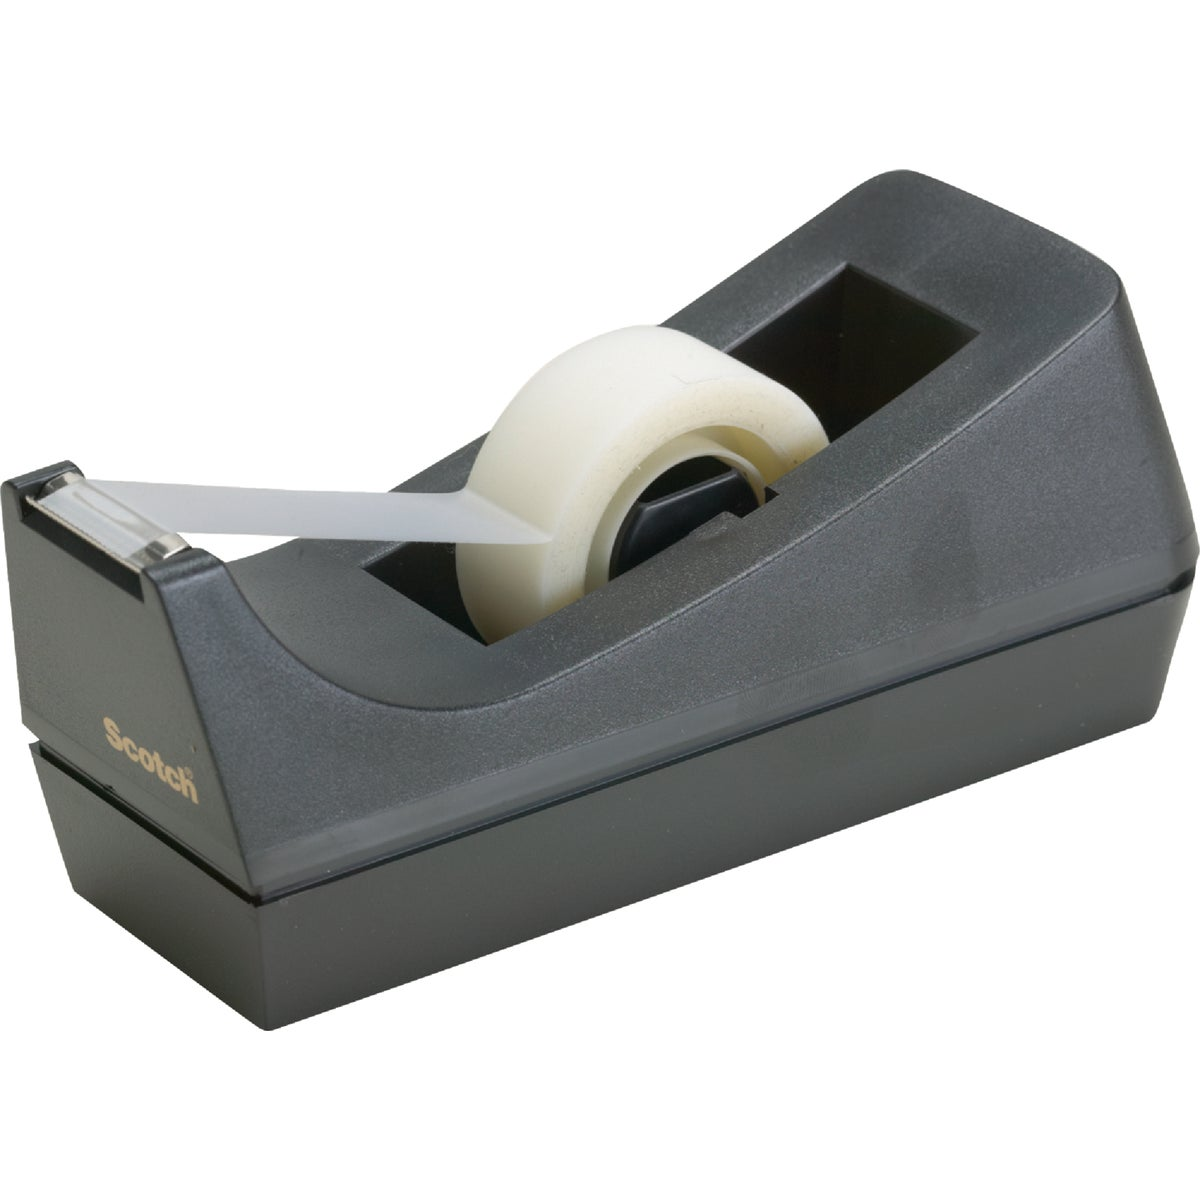 BLK DESK TAPE DISPENSER - C-38 by 3m Co